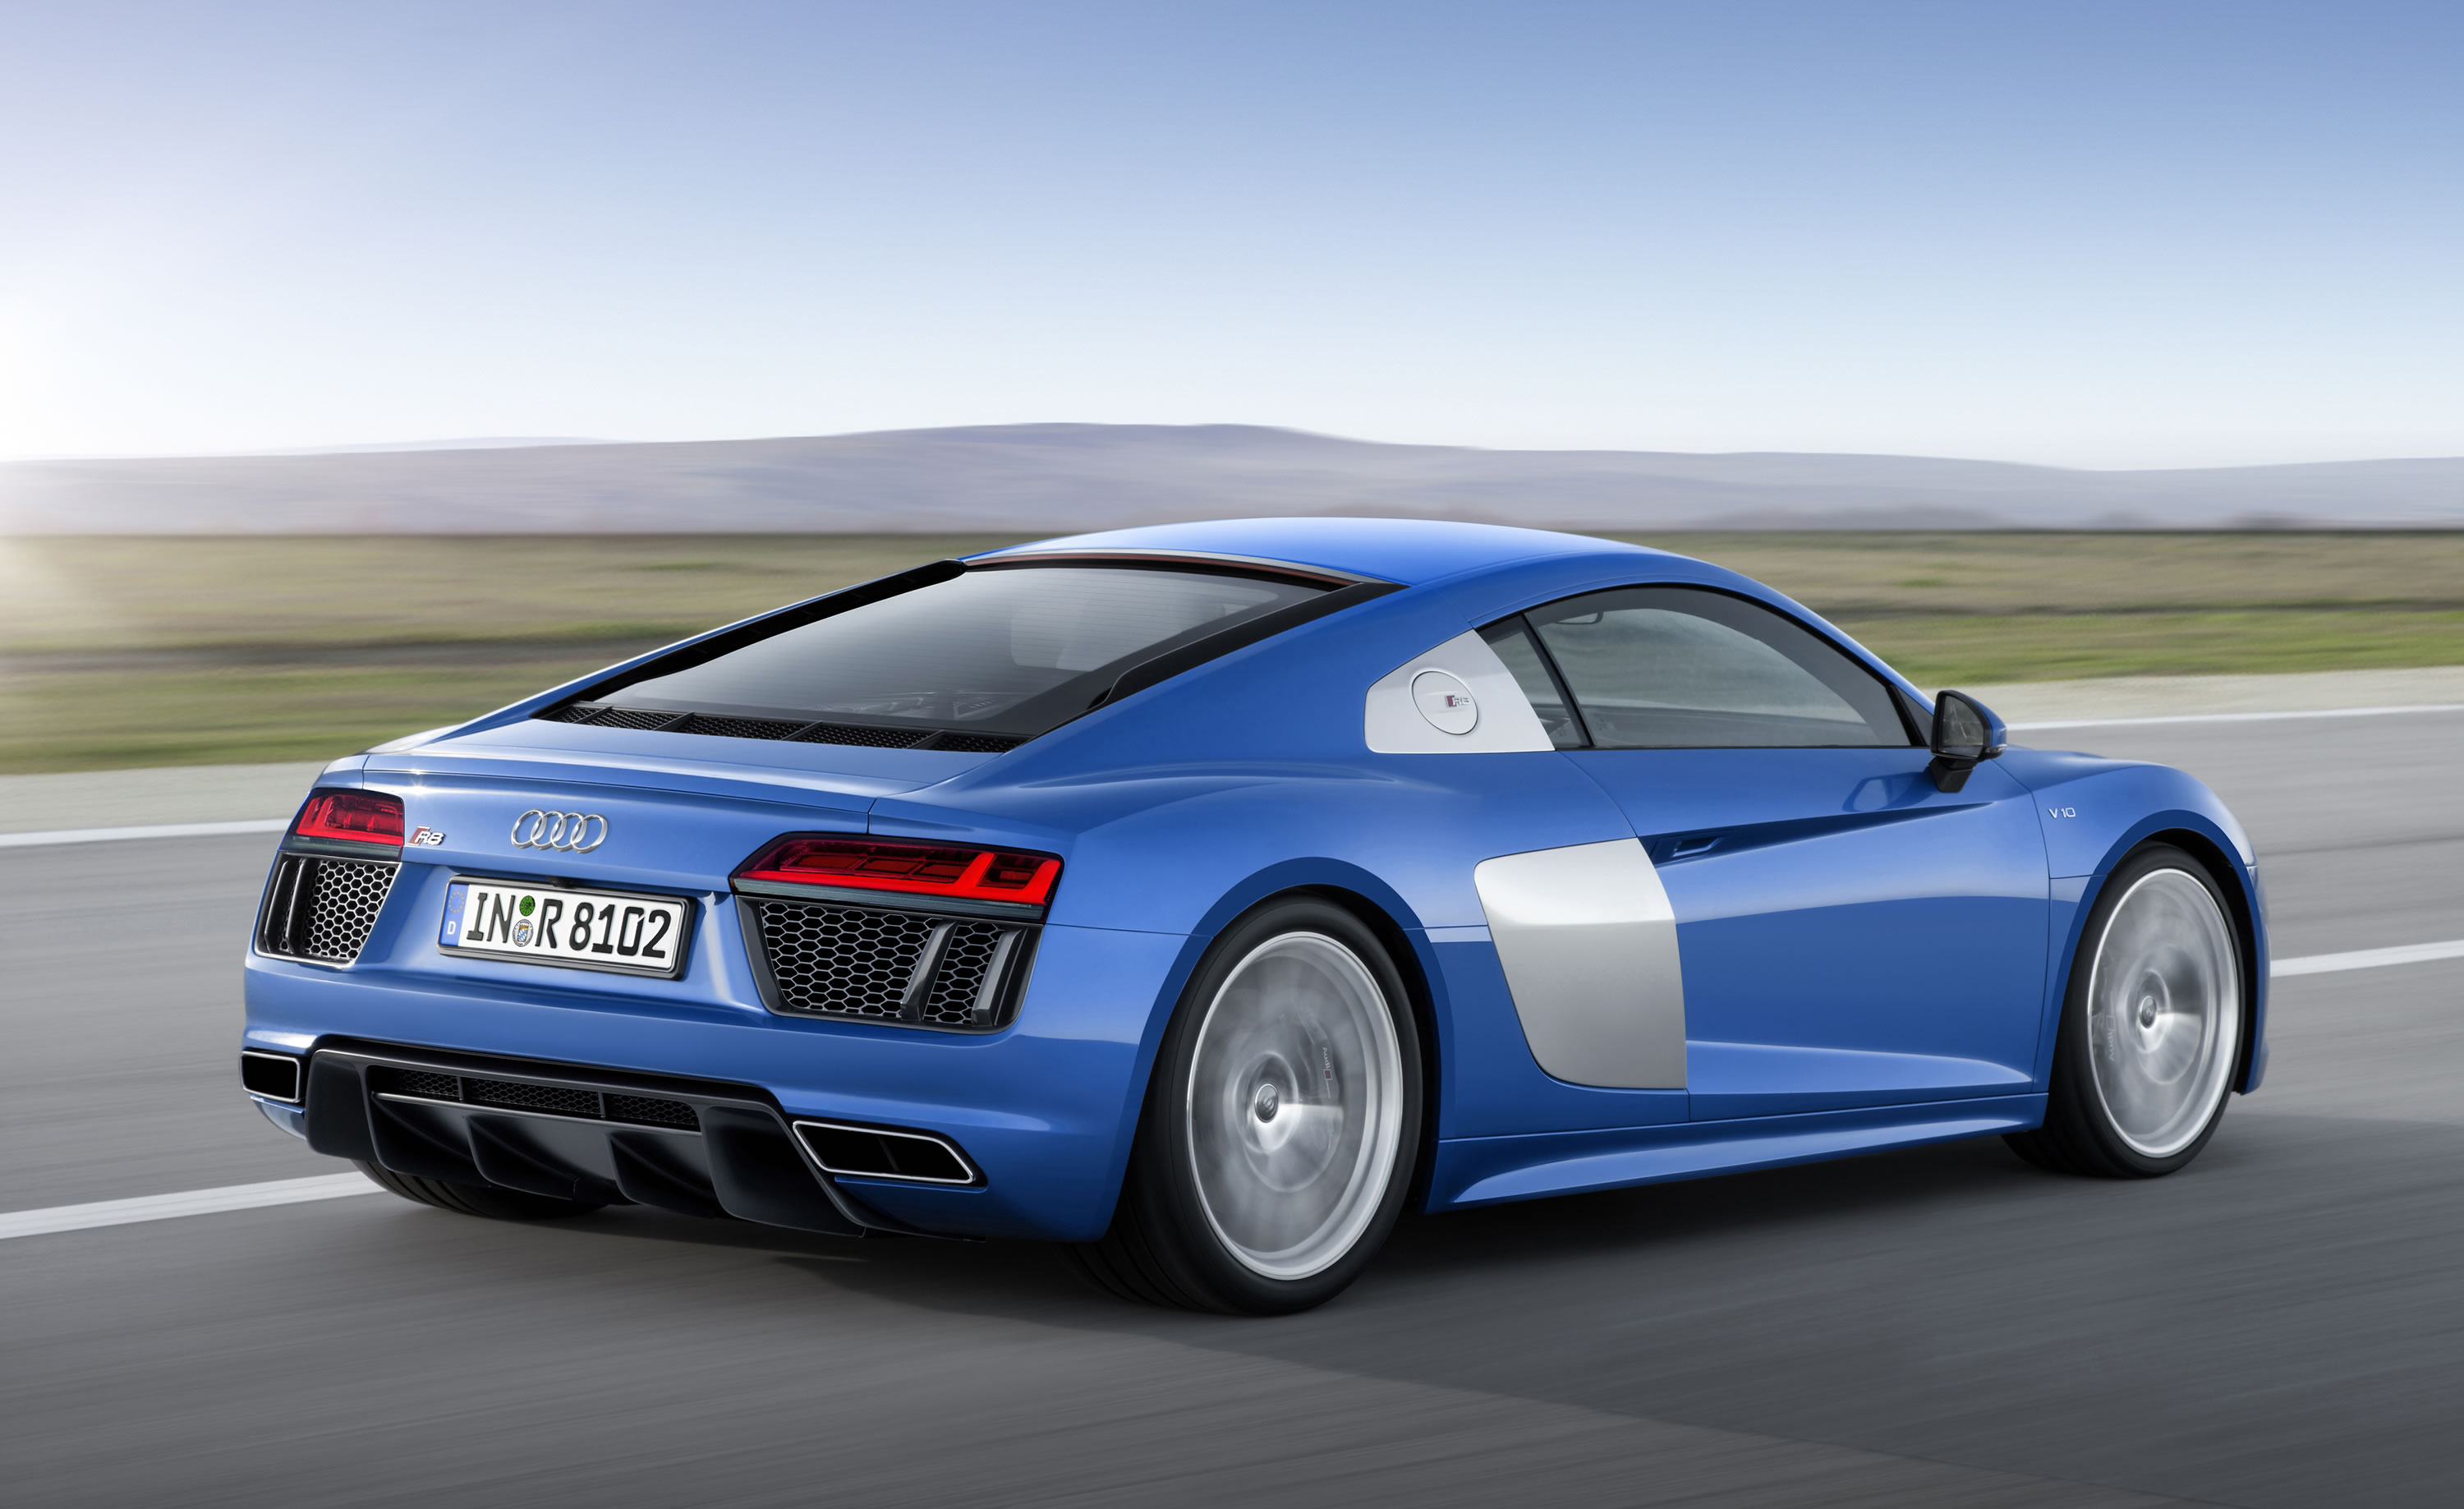 In Its Second Generation, The High Performance R8 Sports Car Has Been Newly  Developed